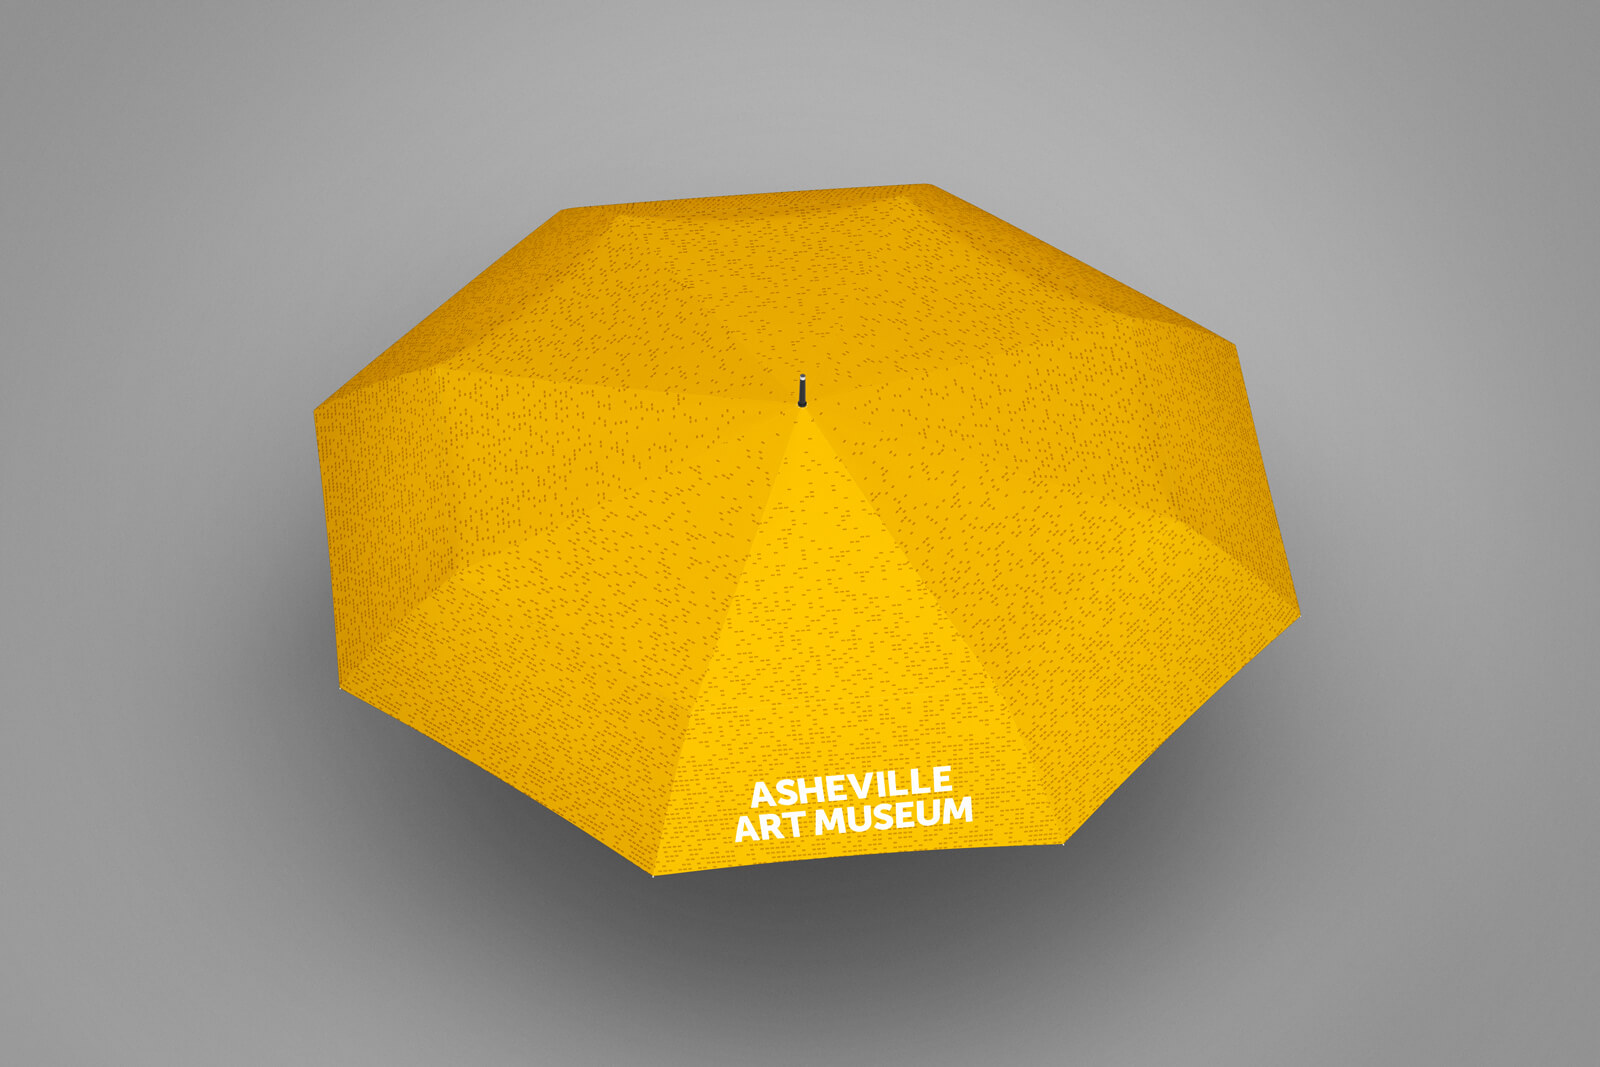 Top view mockup of a gold umbrella with perforated pattern and Asheville Art Museum logo